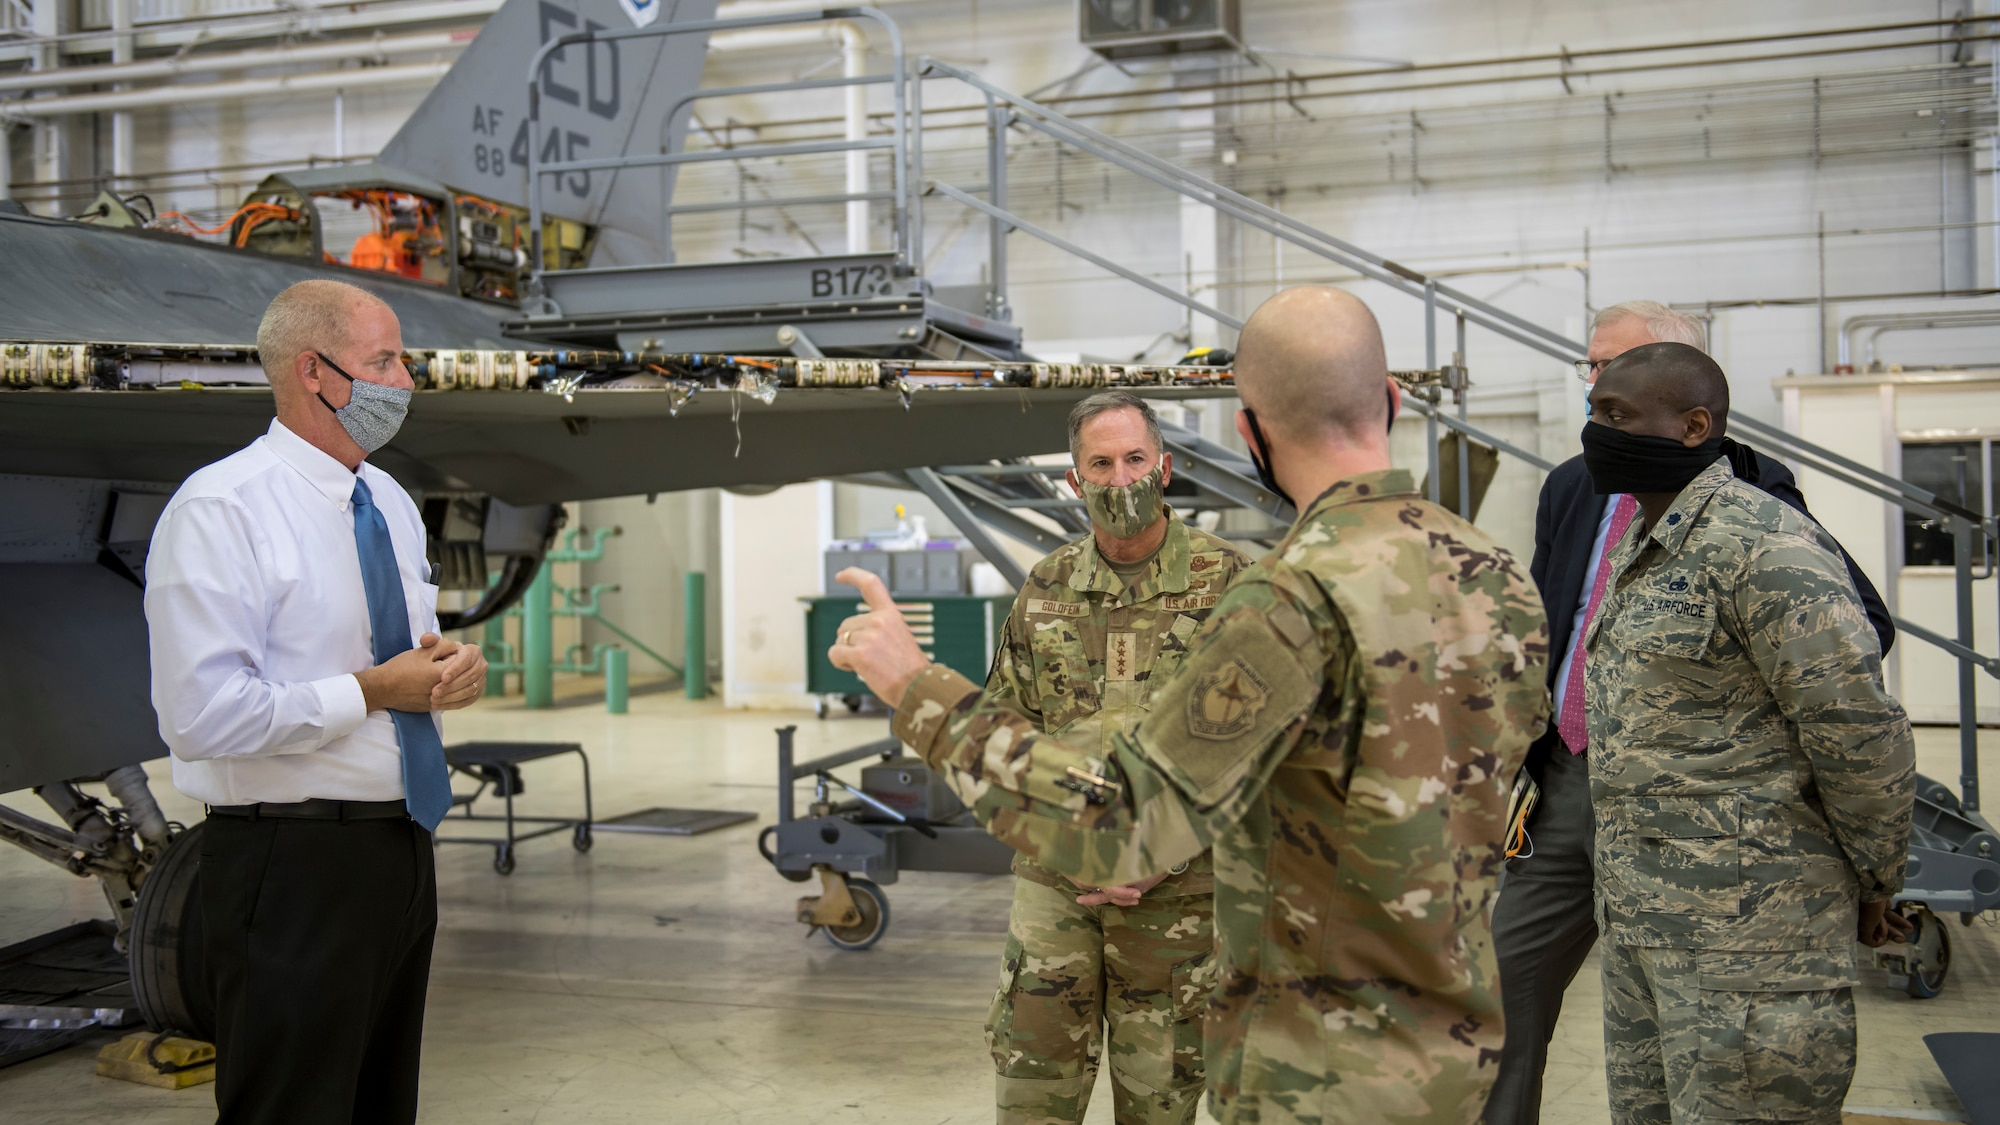 Air Force Chief of Staff Gen. David Goldfein receives a briefing on maintenance and test operations at Edwards Air Force Base, California, June 17. (Air Force photo by Giancarlo Casem)